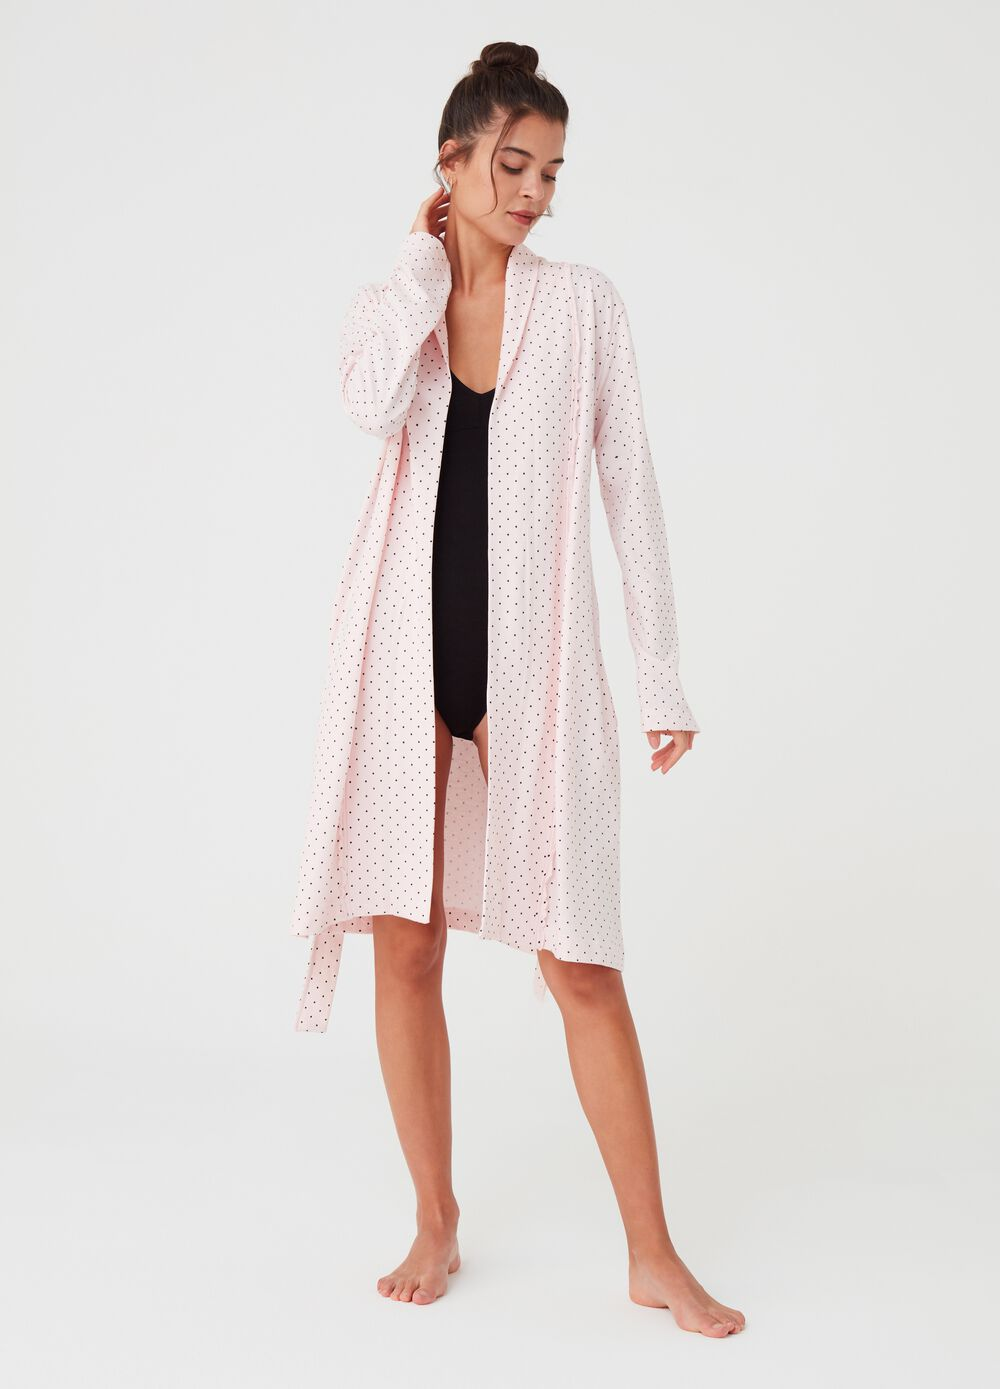 Dressing gown with polka dot print and long sleeves